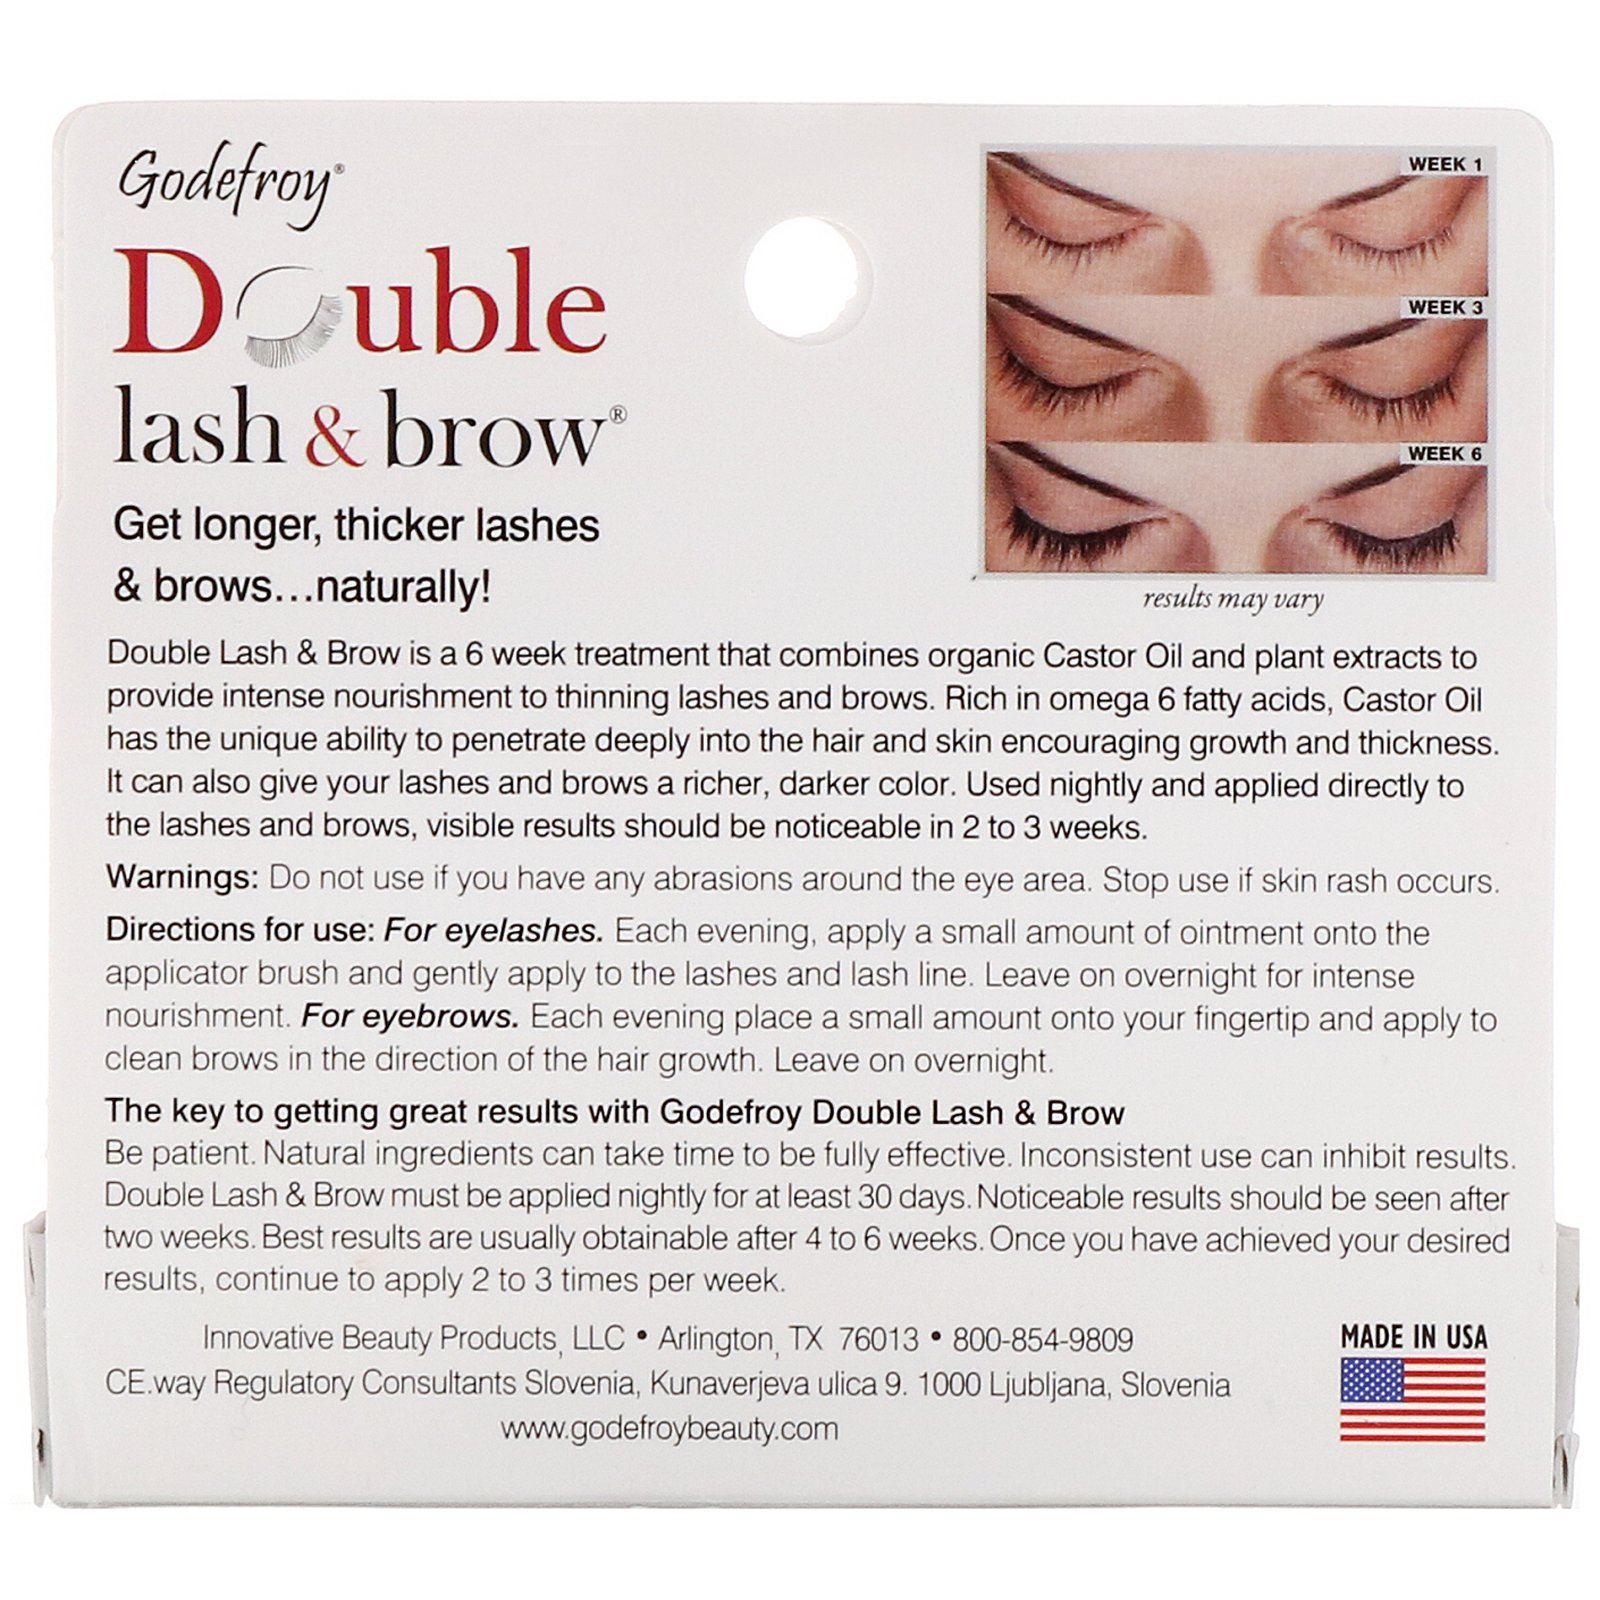 6860606f75b Godefroy, Double Lash & Brow, Eyelash and Eyebrow Serum, 0.1 fl oz (3 ml).  By Godefroy